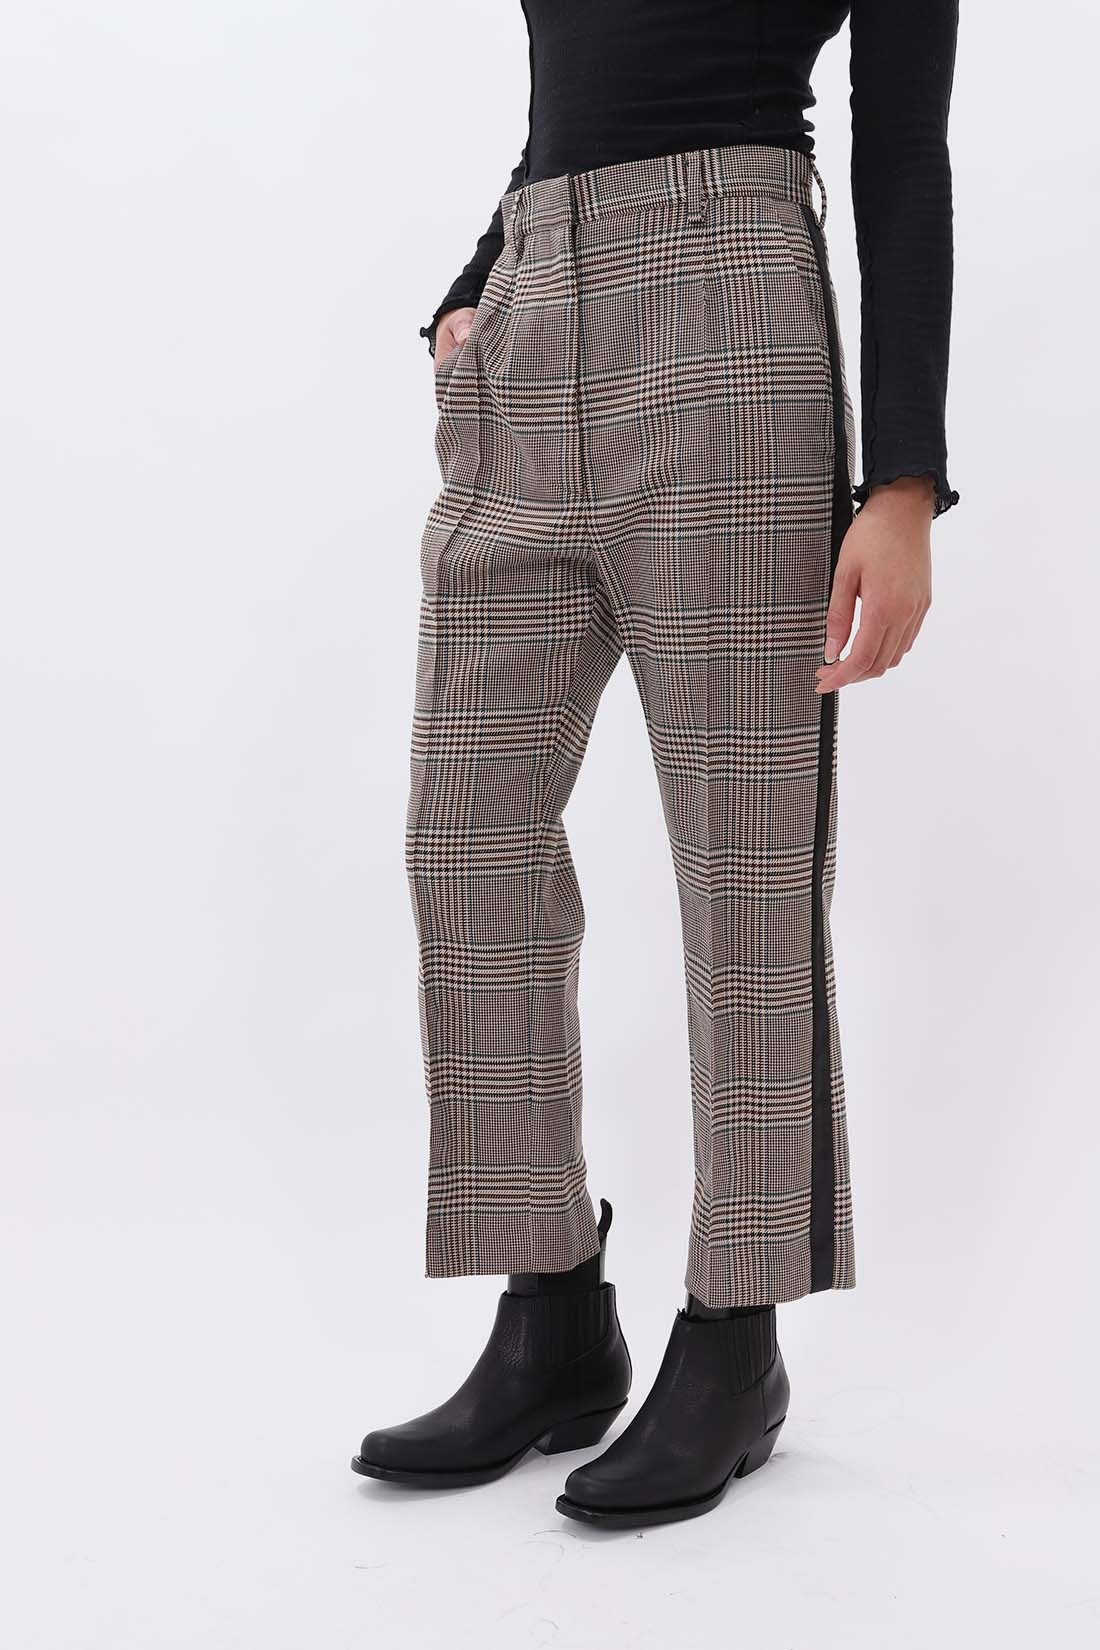 MM6 MAISON MARGIELA / Belt tartan trousers Beige